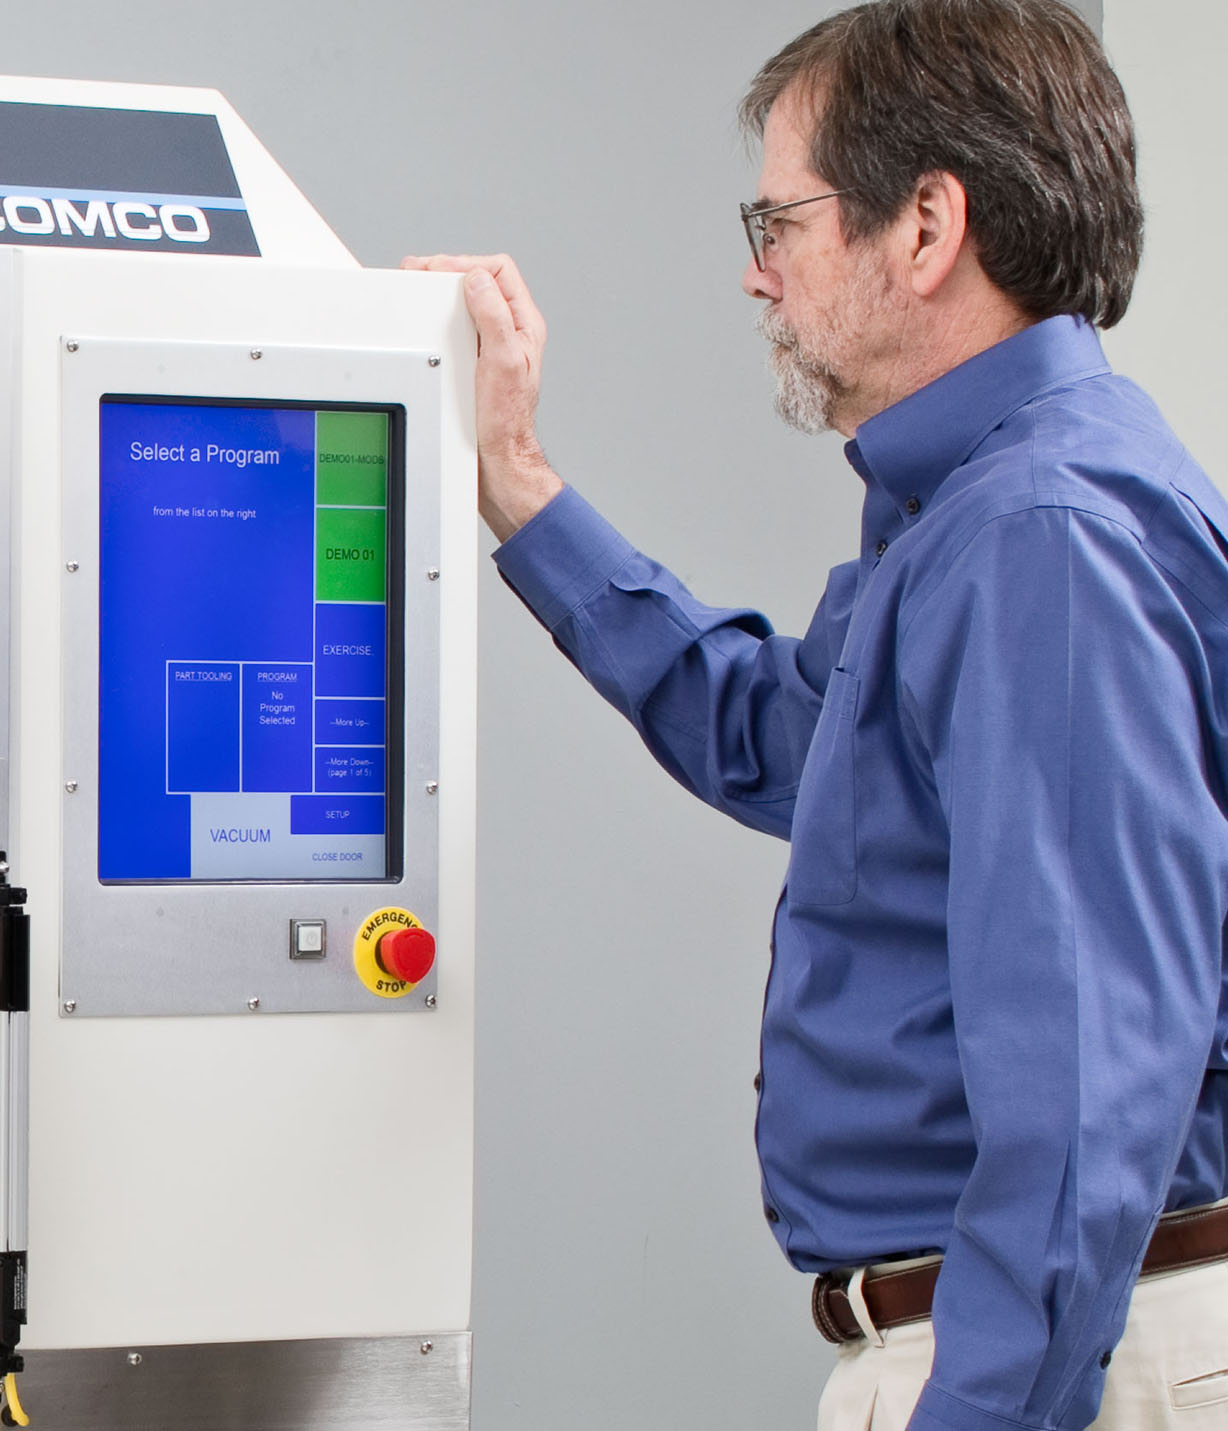 User Interface on Comco Automated MicroBlasting System